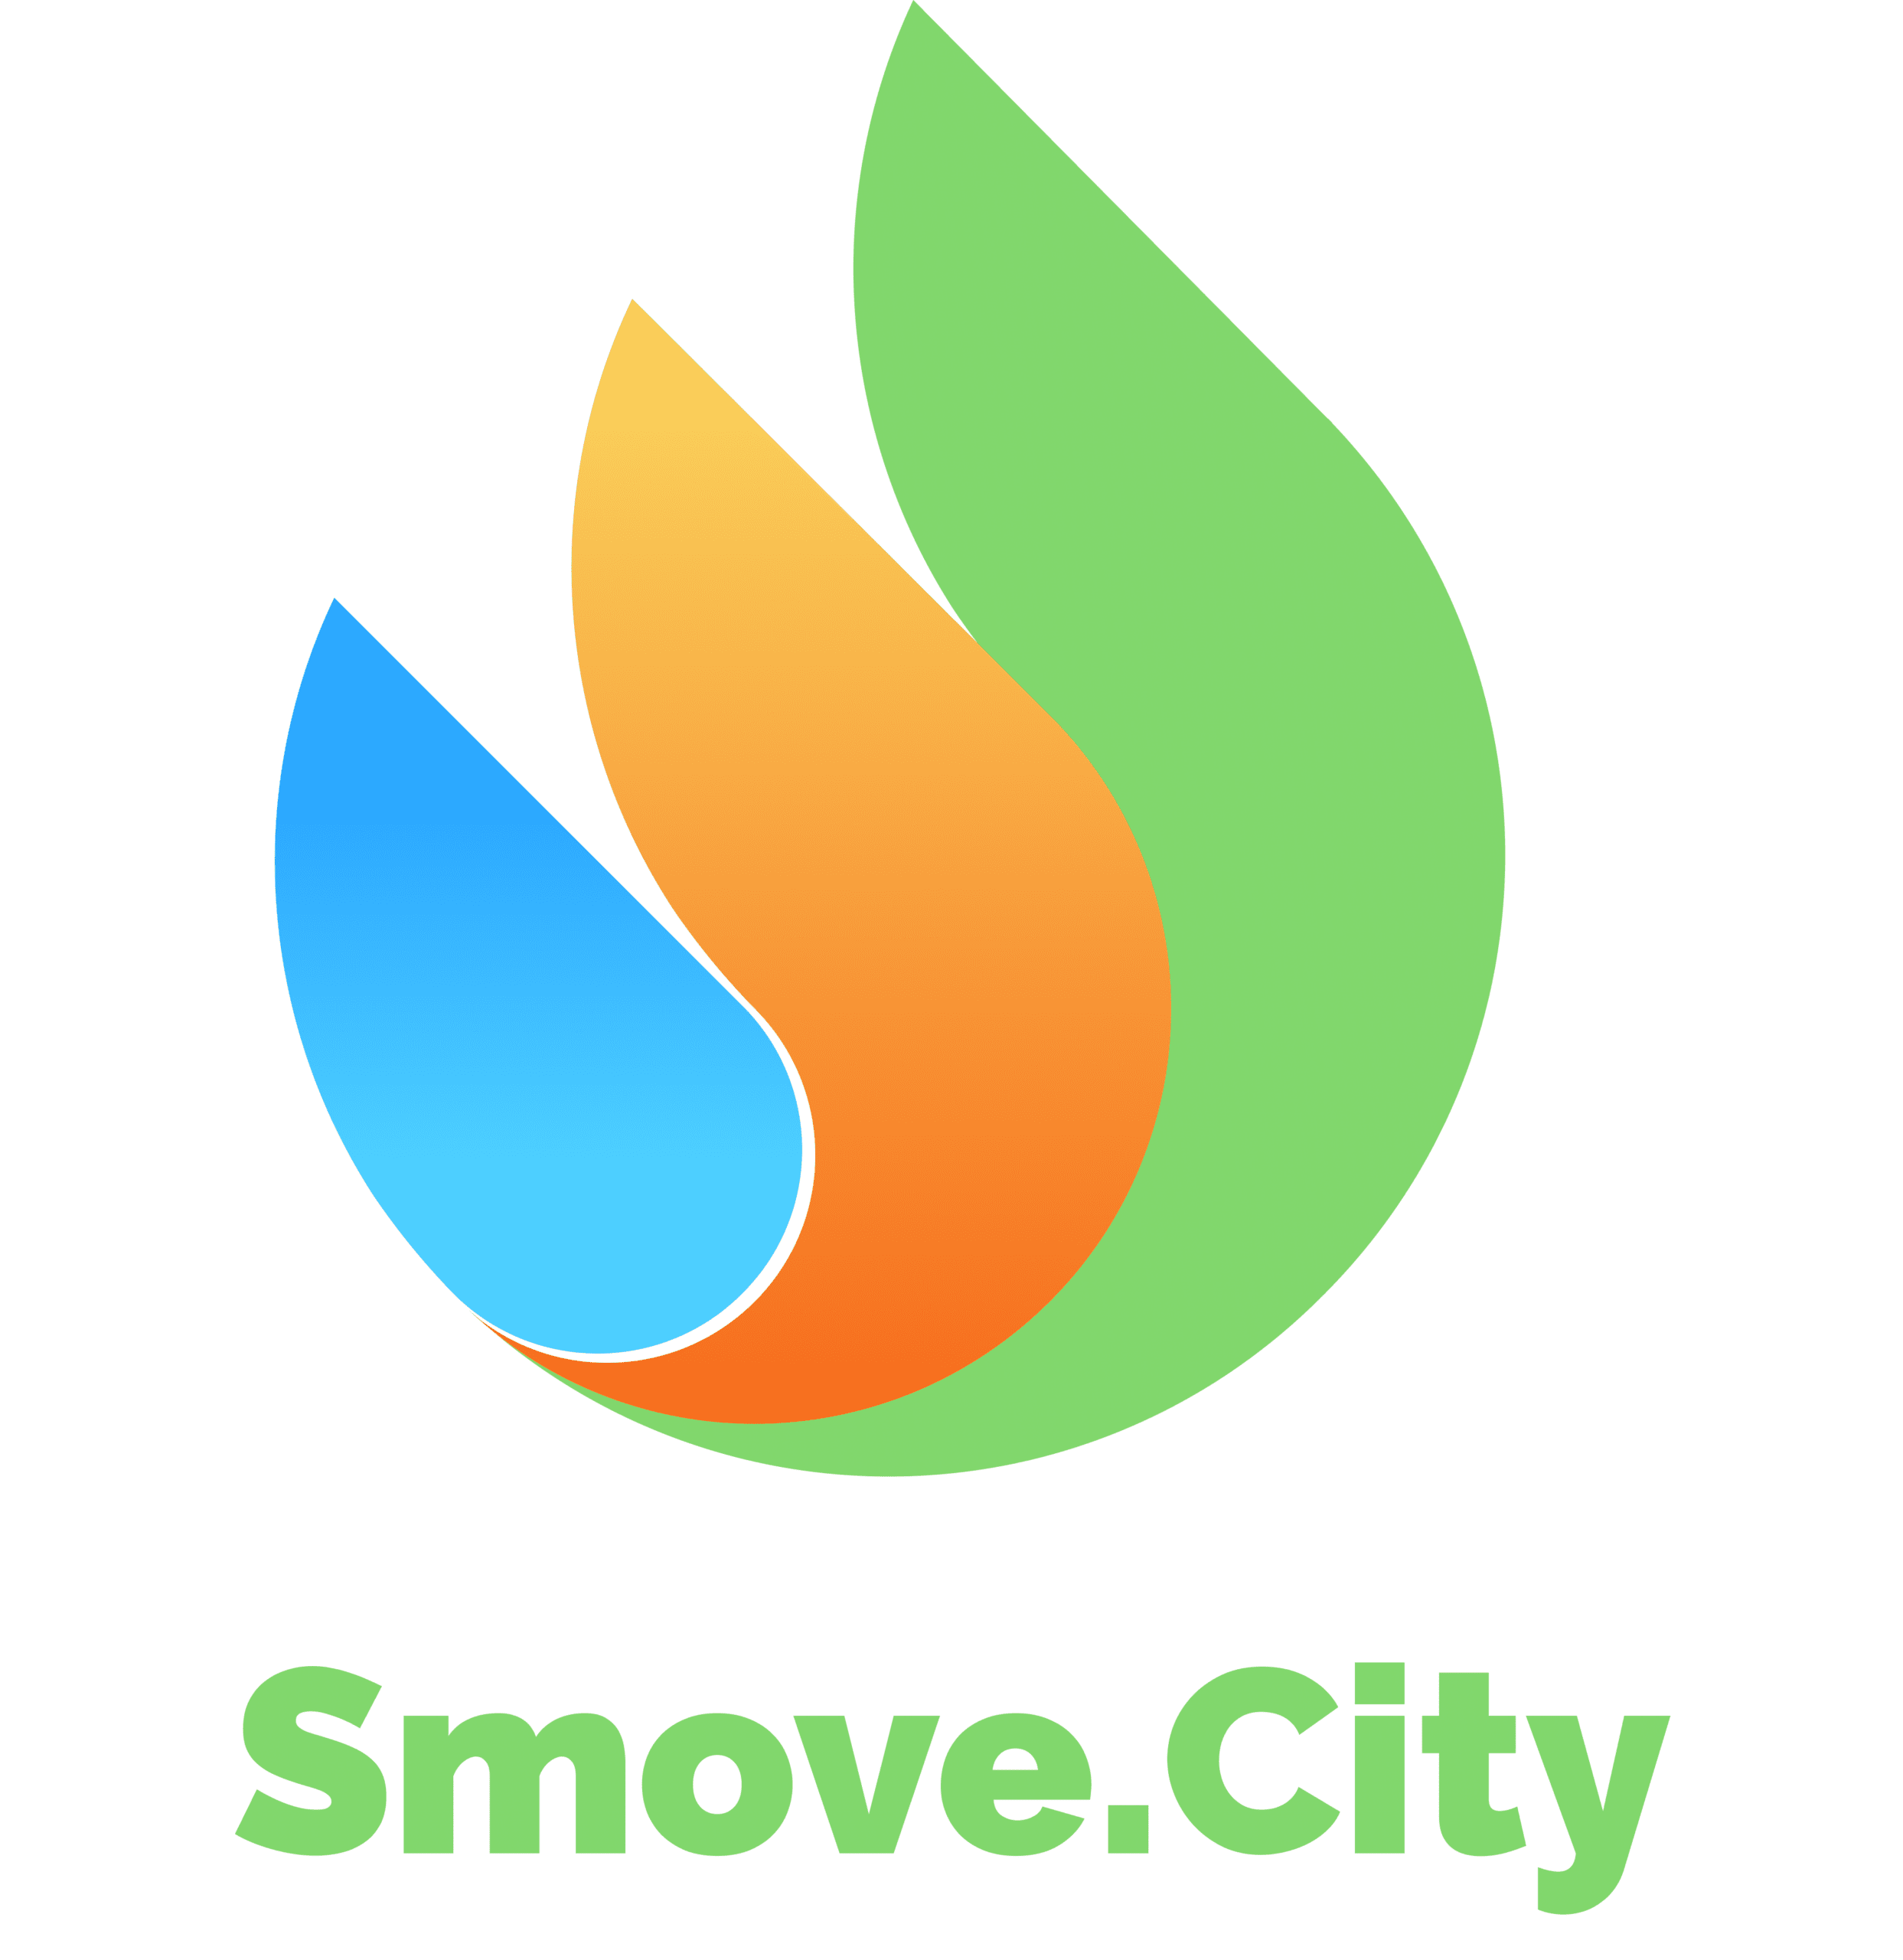 Smove.City - Mobility Data Platform and Bike Share Solution For Cities